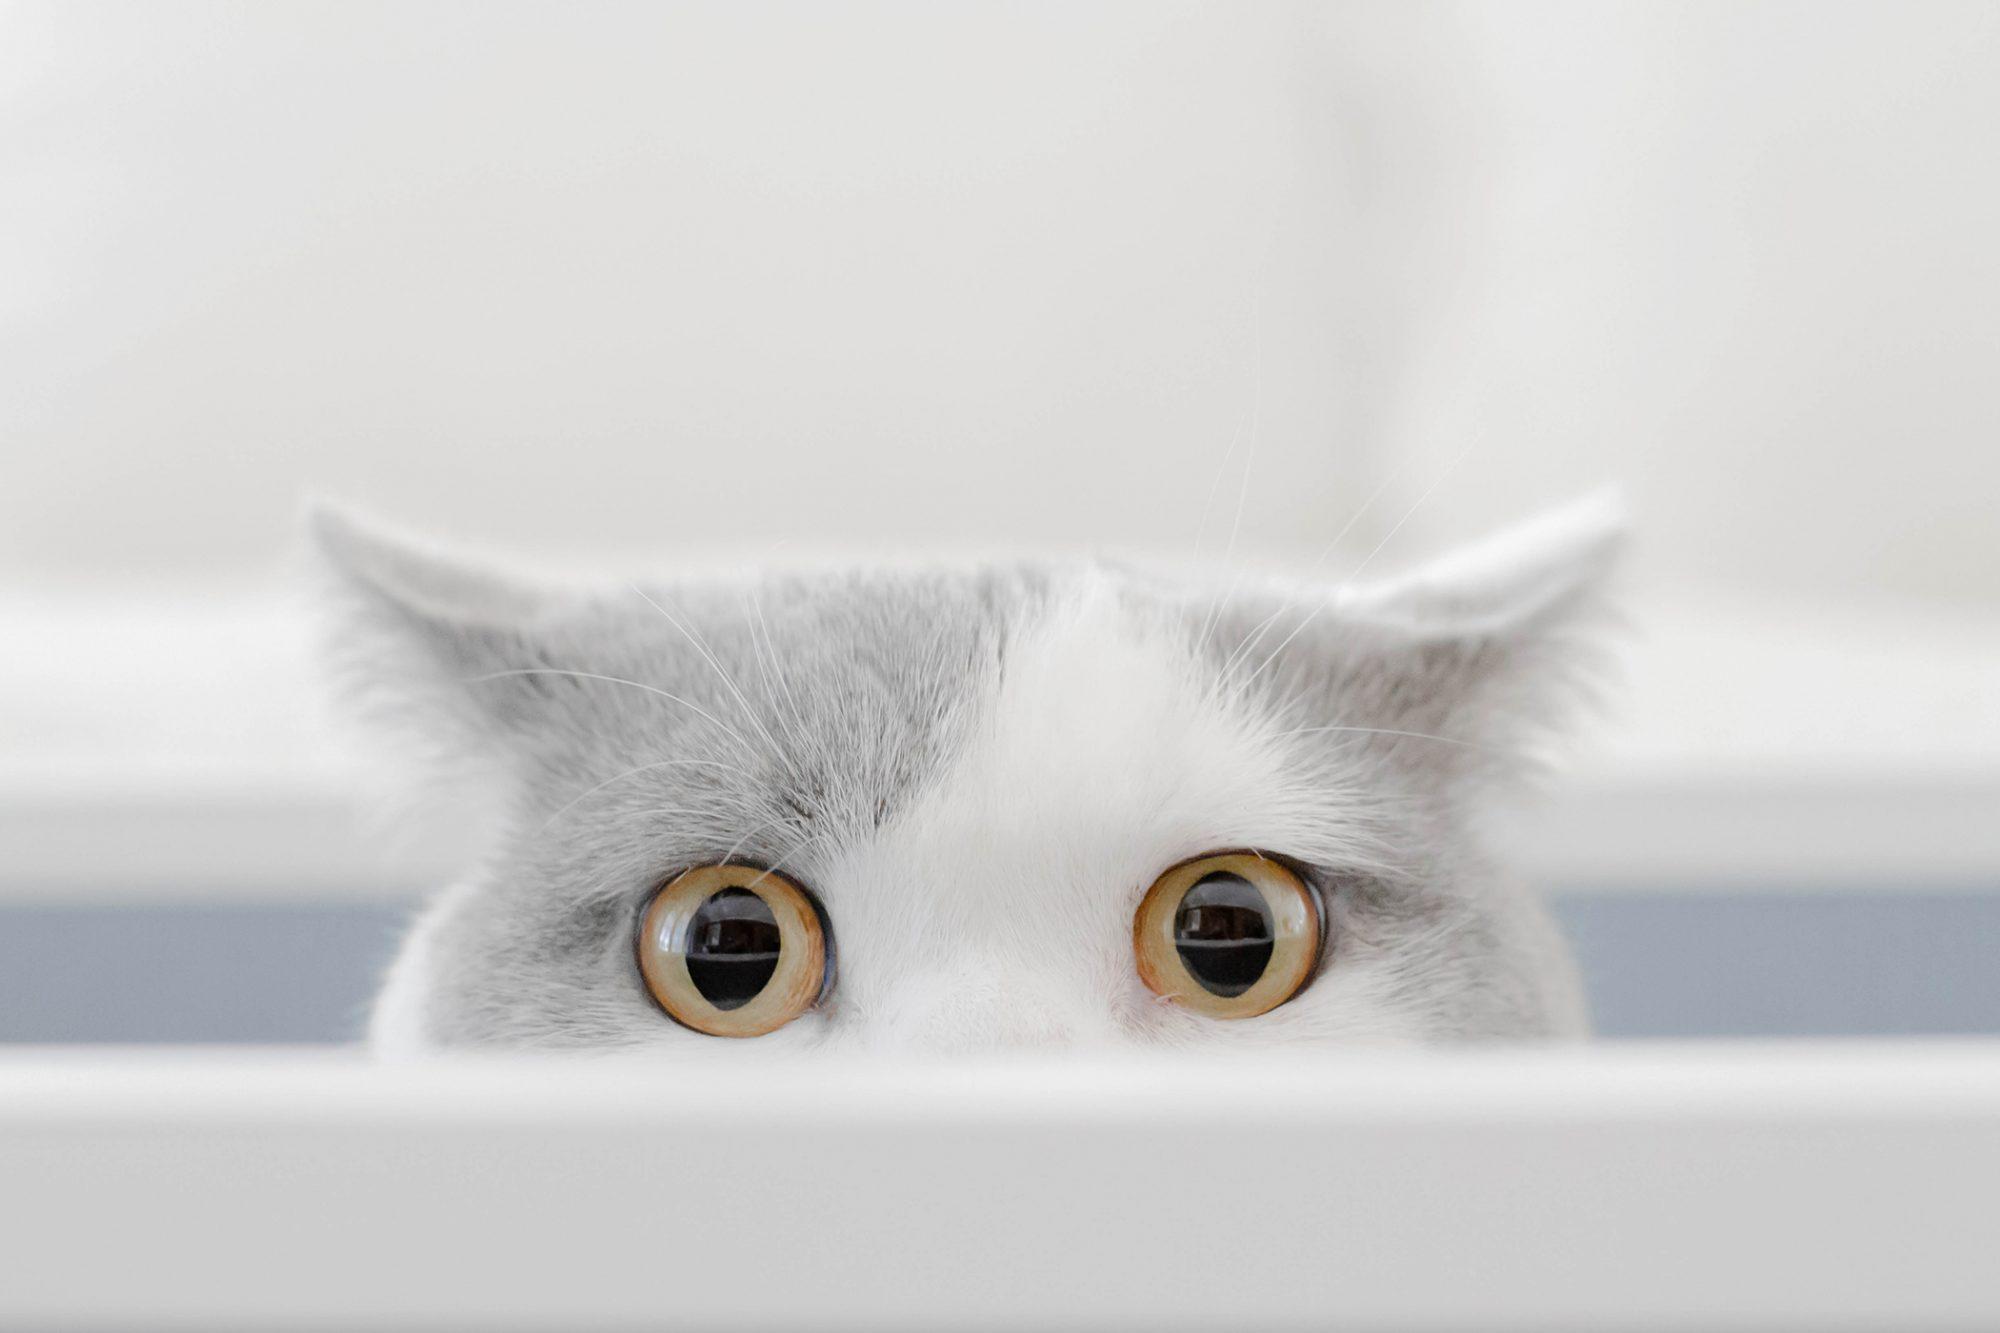 cat with wide eyes peeking over an edge